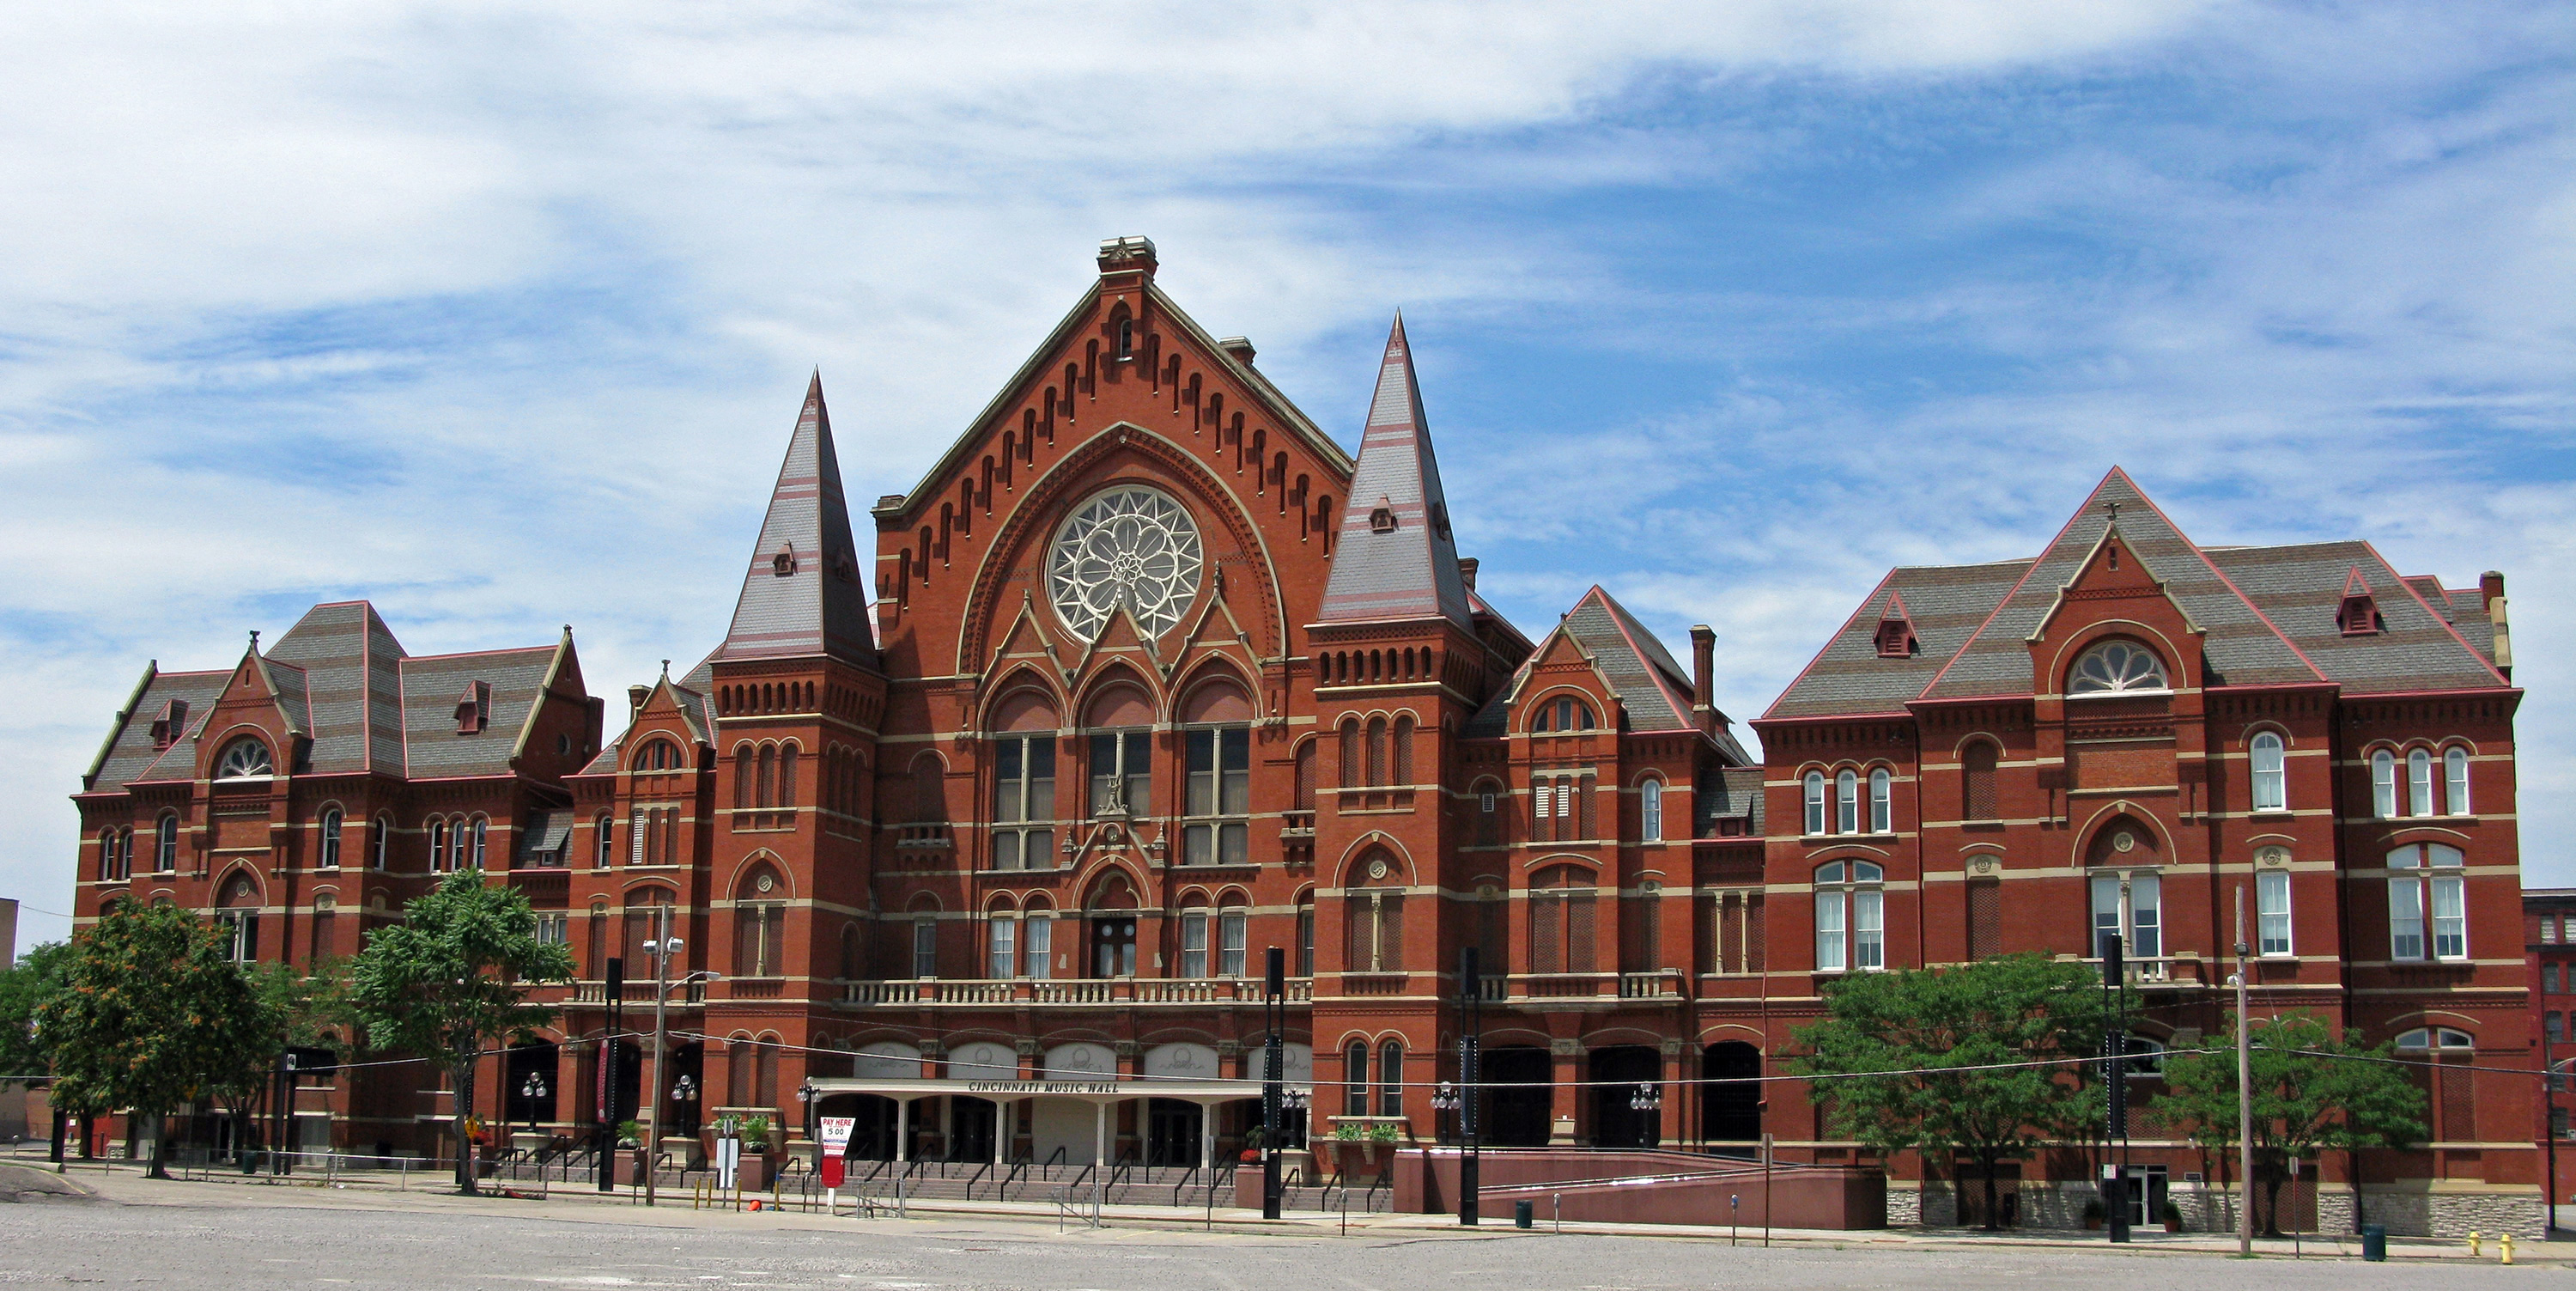 These Are the 11 Most Endangered Places In the United States